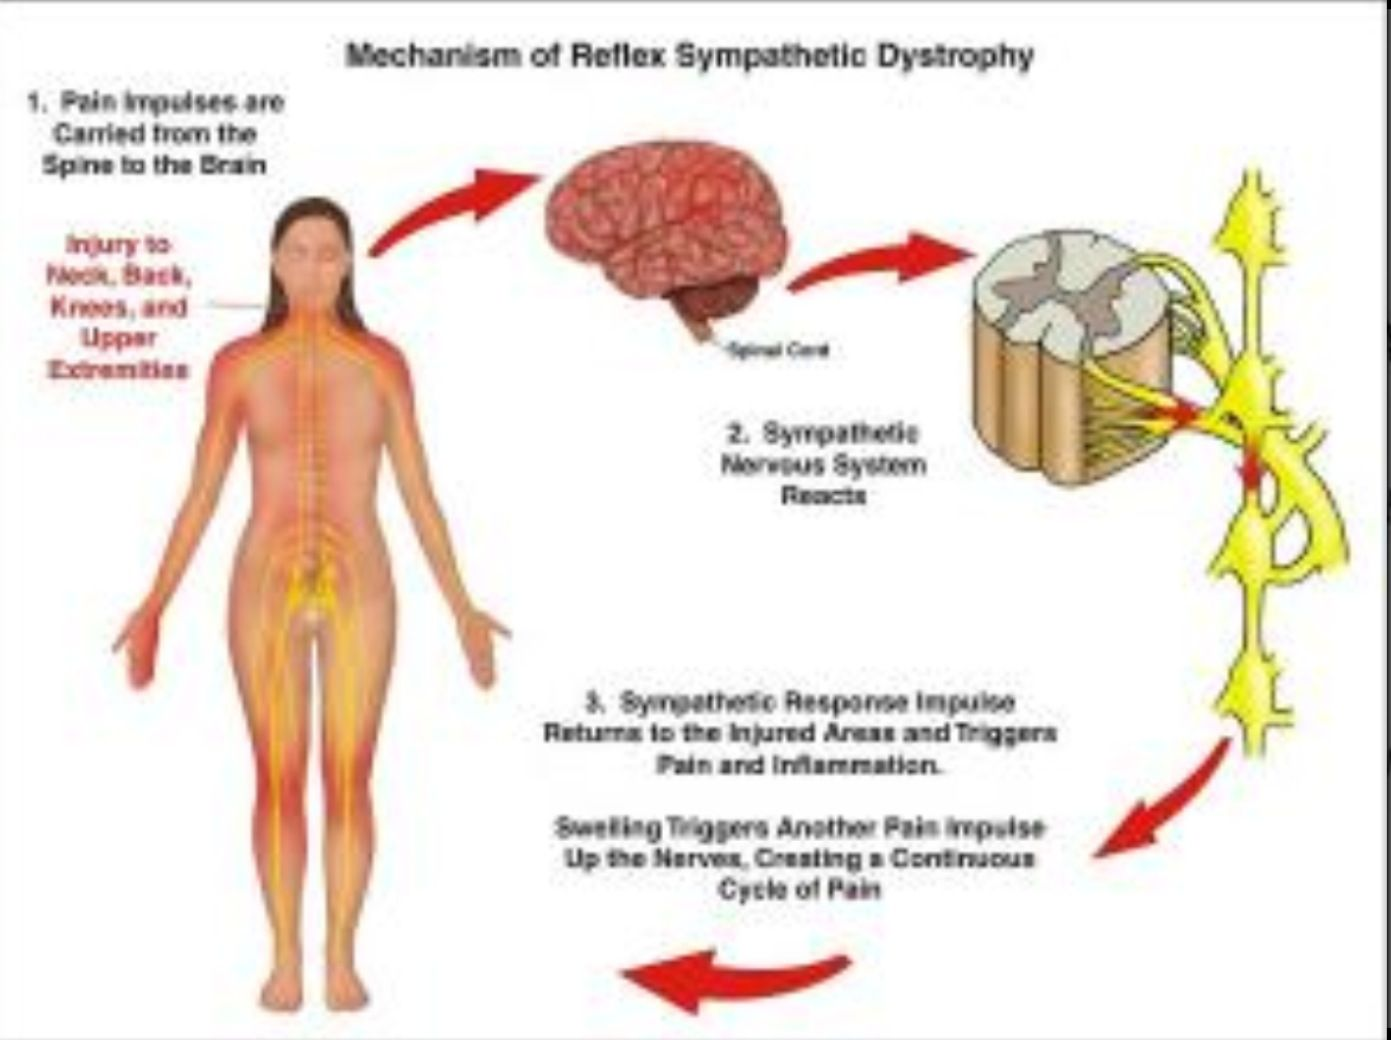 medium resolution of crps rsd pain scale affect me complex regional pain syndrome chronic illness